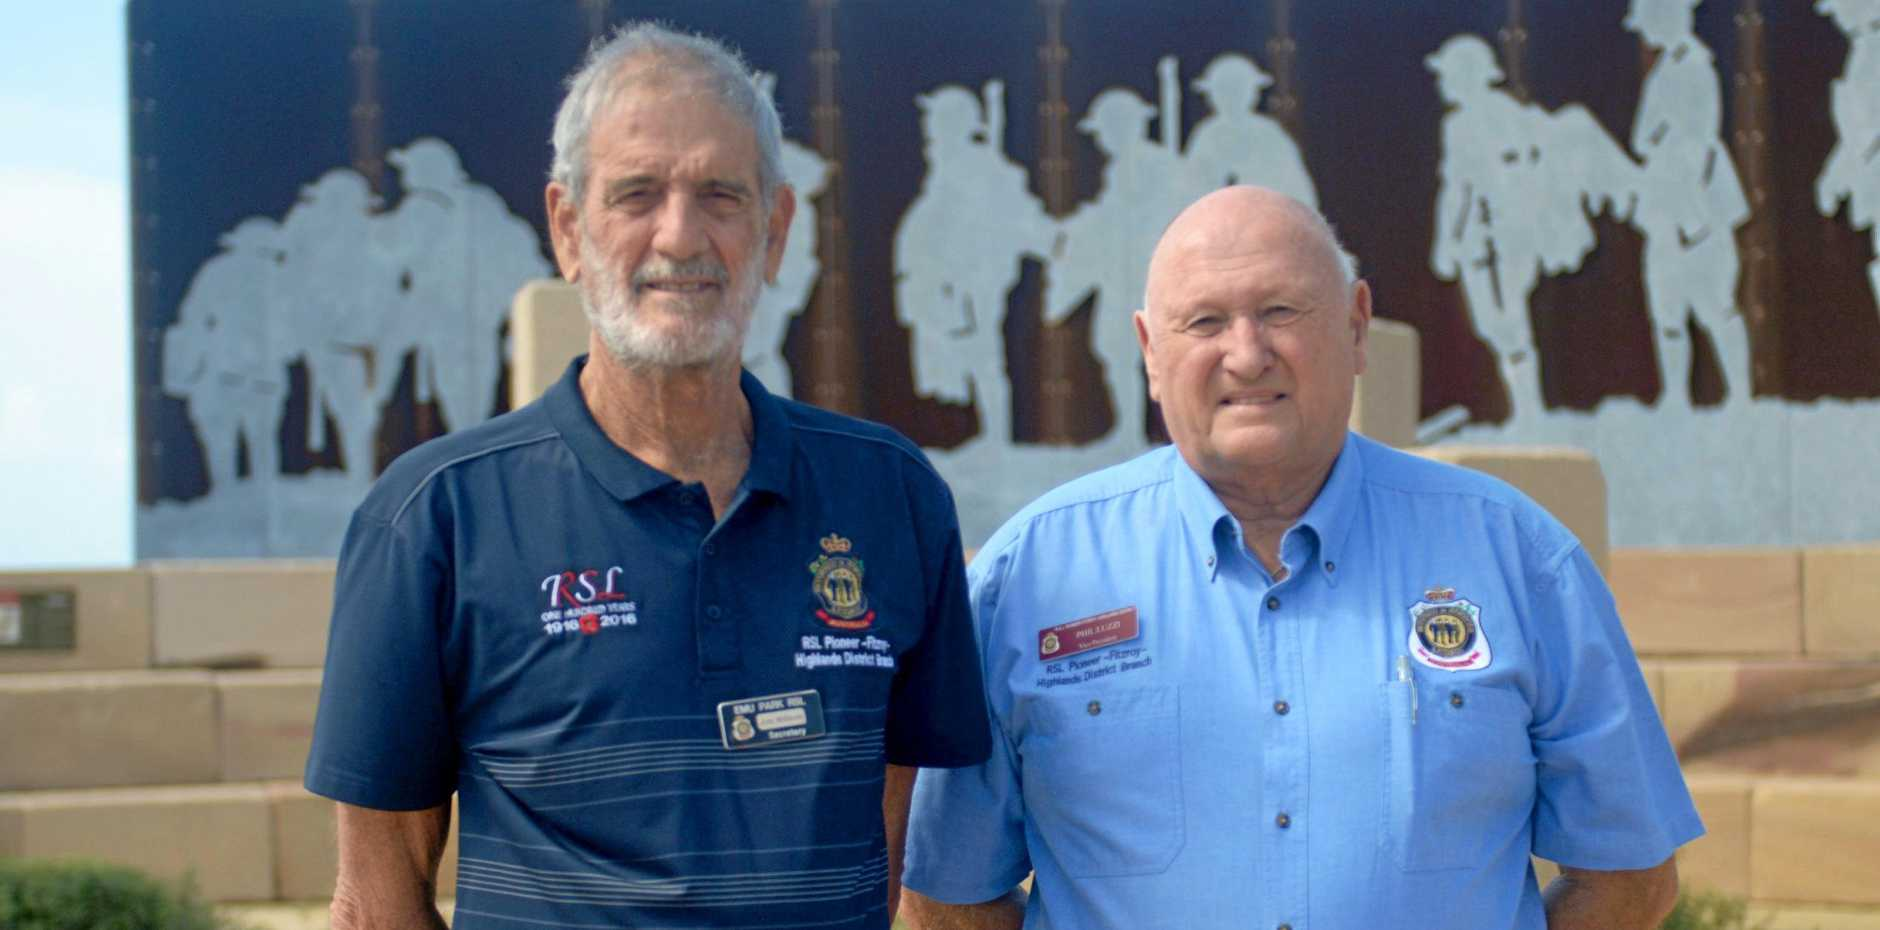 Emu Park RSL's Jon Willson and District Vice President Phillip Luzzi welcome more funding for Emu Park's Anzac walk